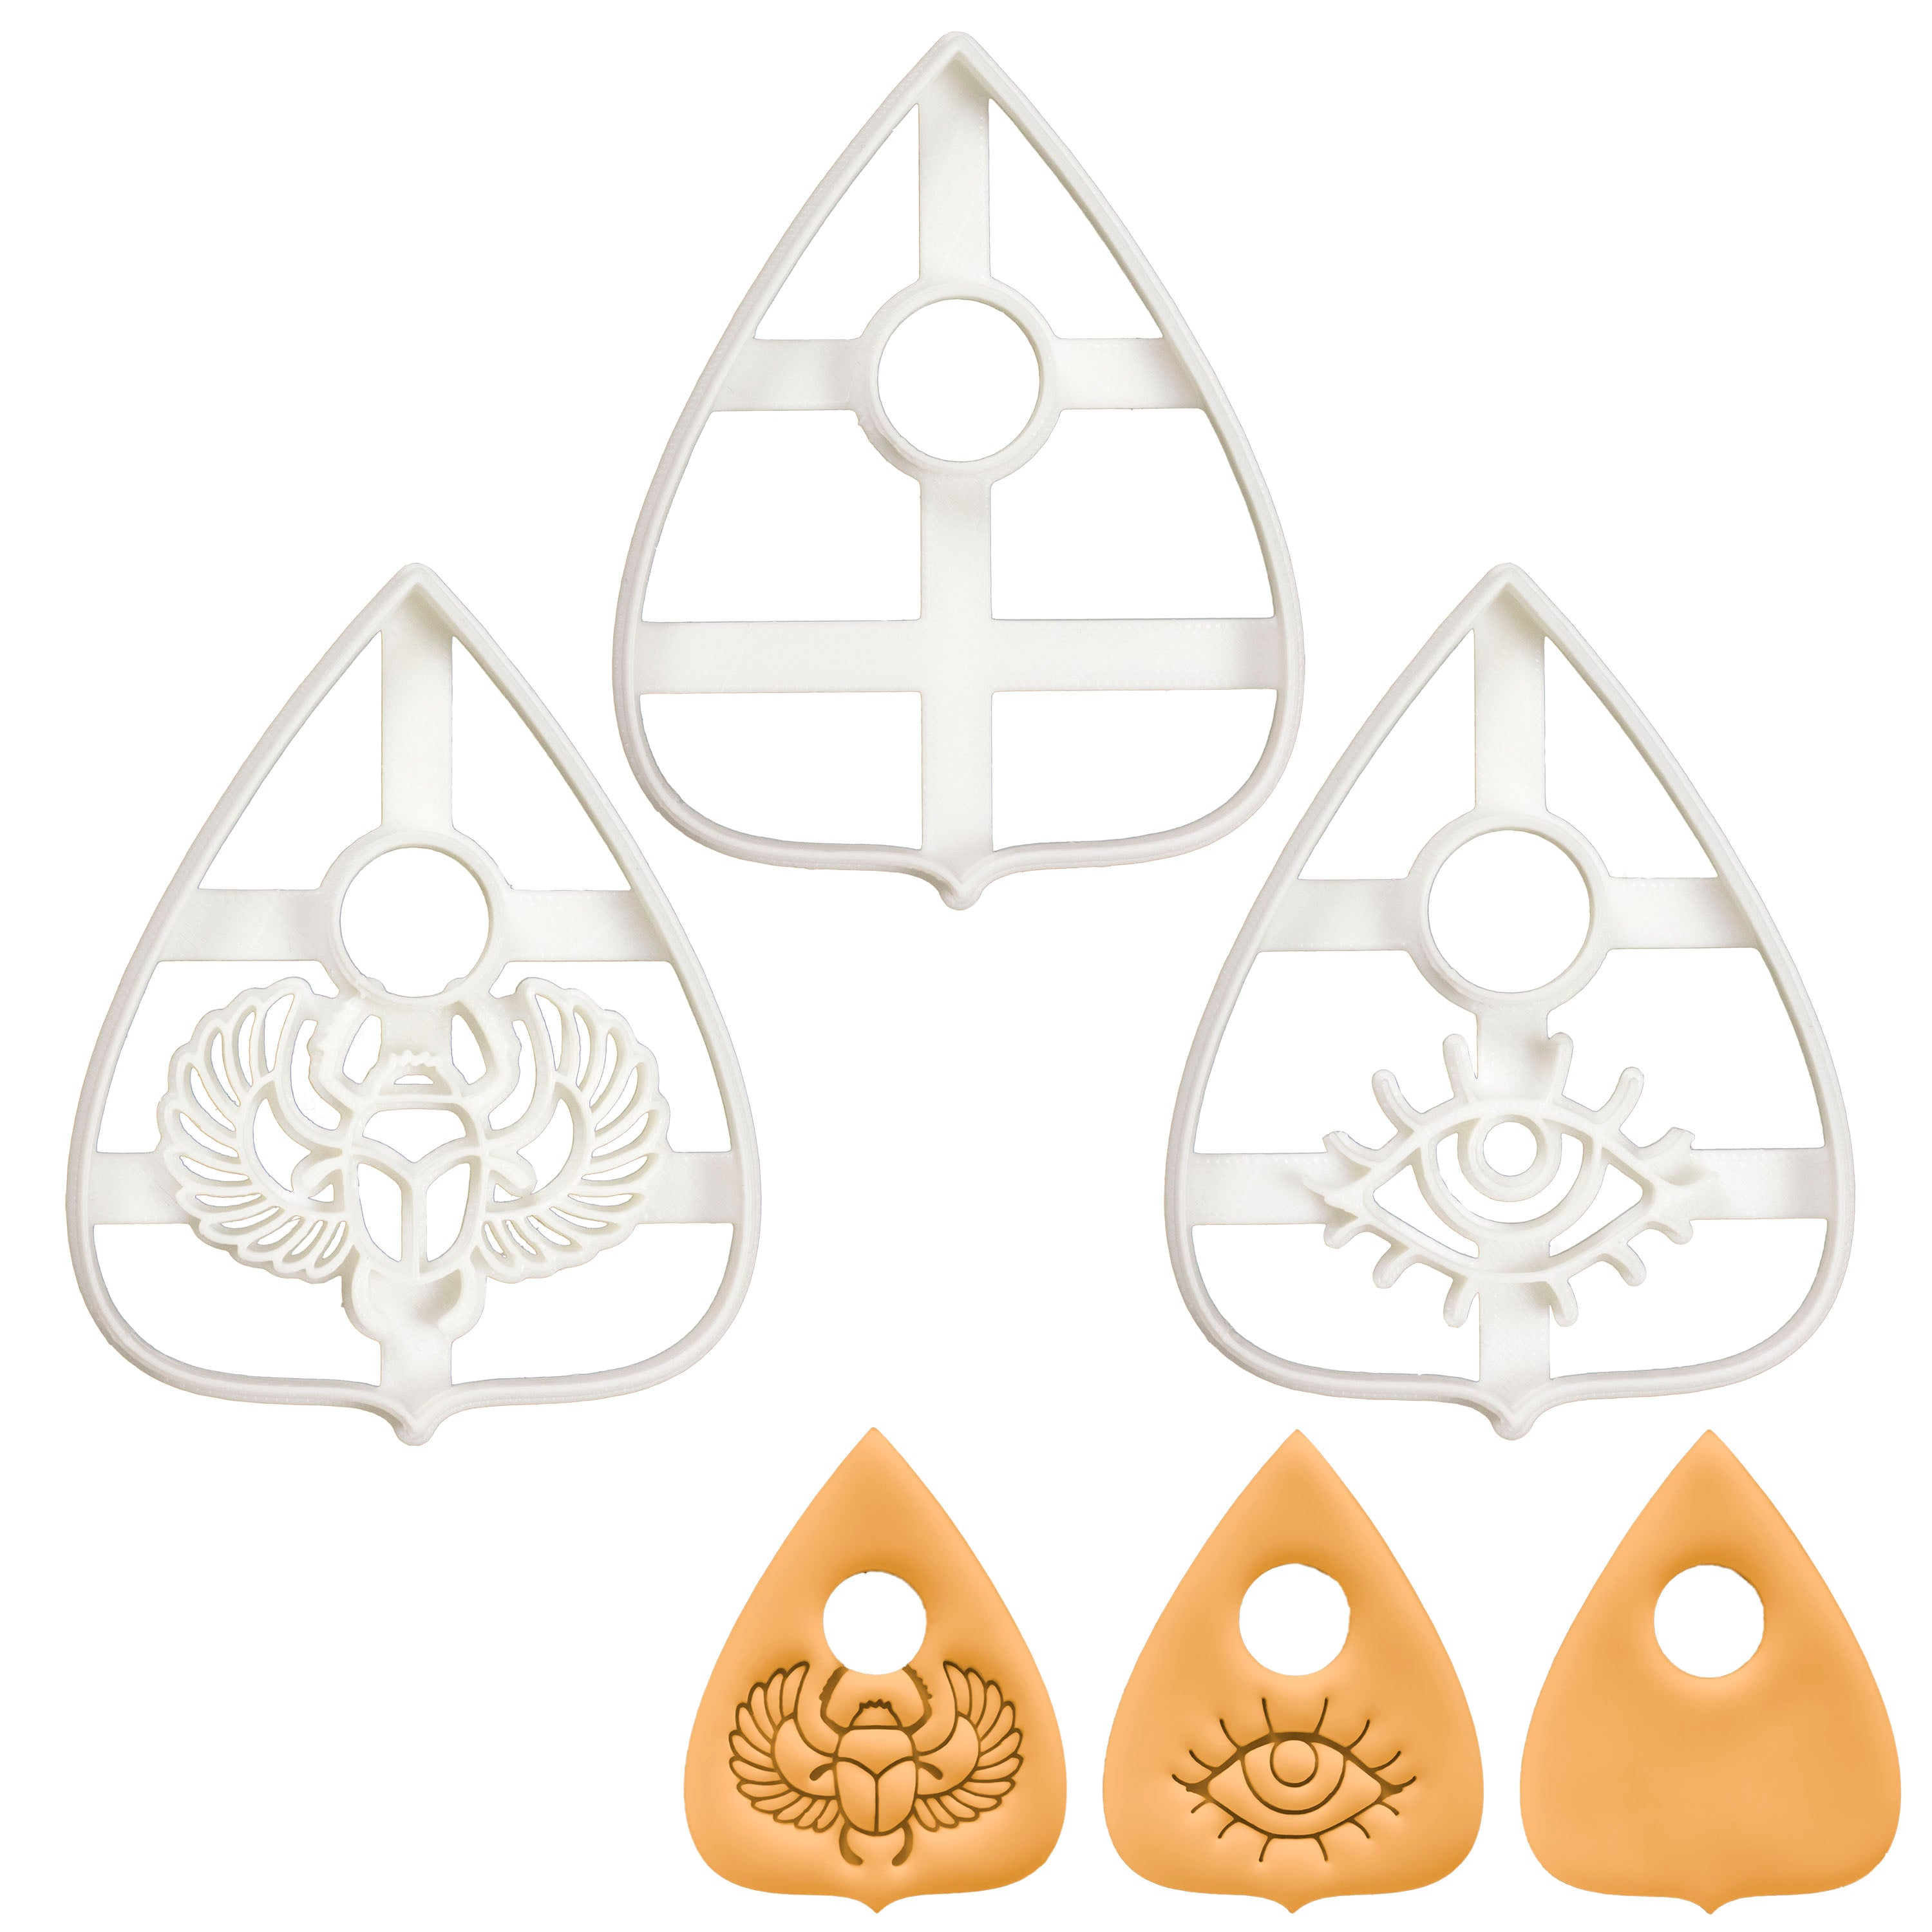 Set of 3 Planchette cookie cutters (Designs: Plain, Eye, Scarab)